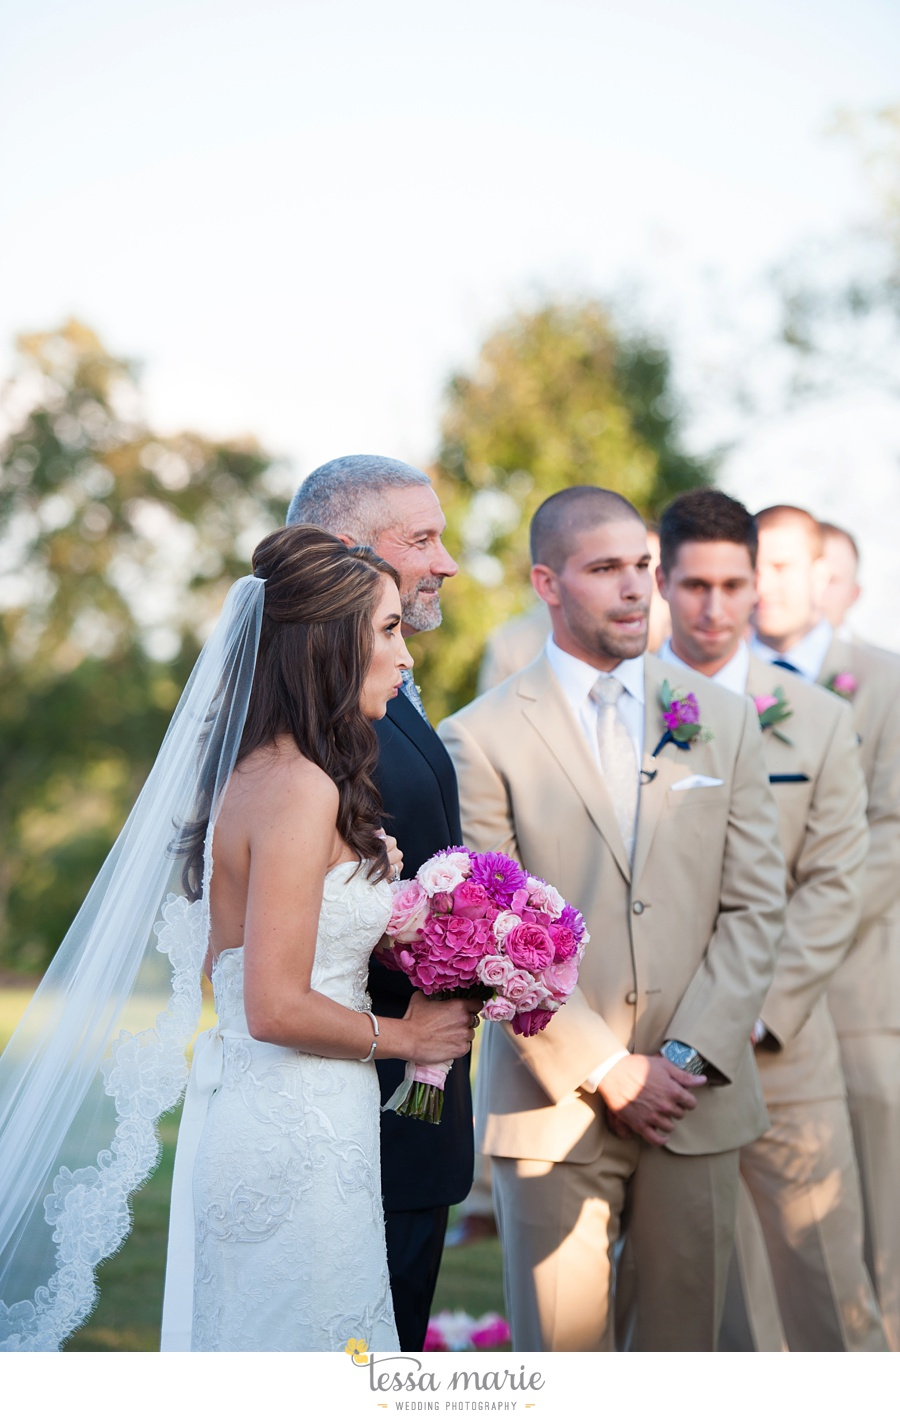 564_foxhall_wedding_outdoor_fall_wedding_andy_beach_hi_note_a_divine_event_tessa_marie_weddings_photography_wedding_pictures